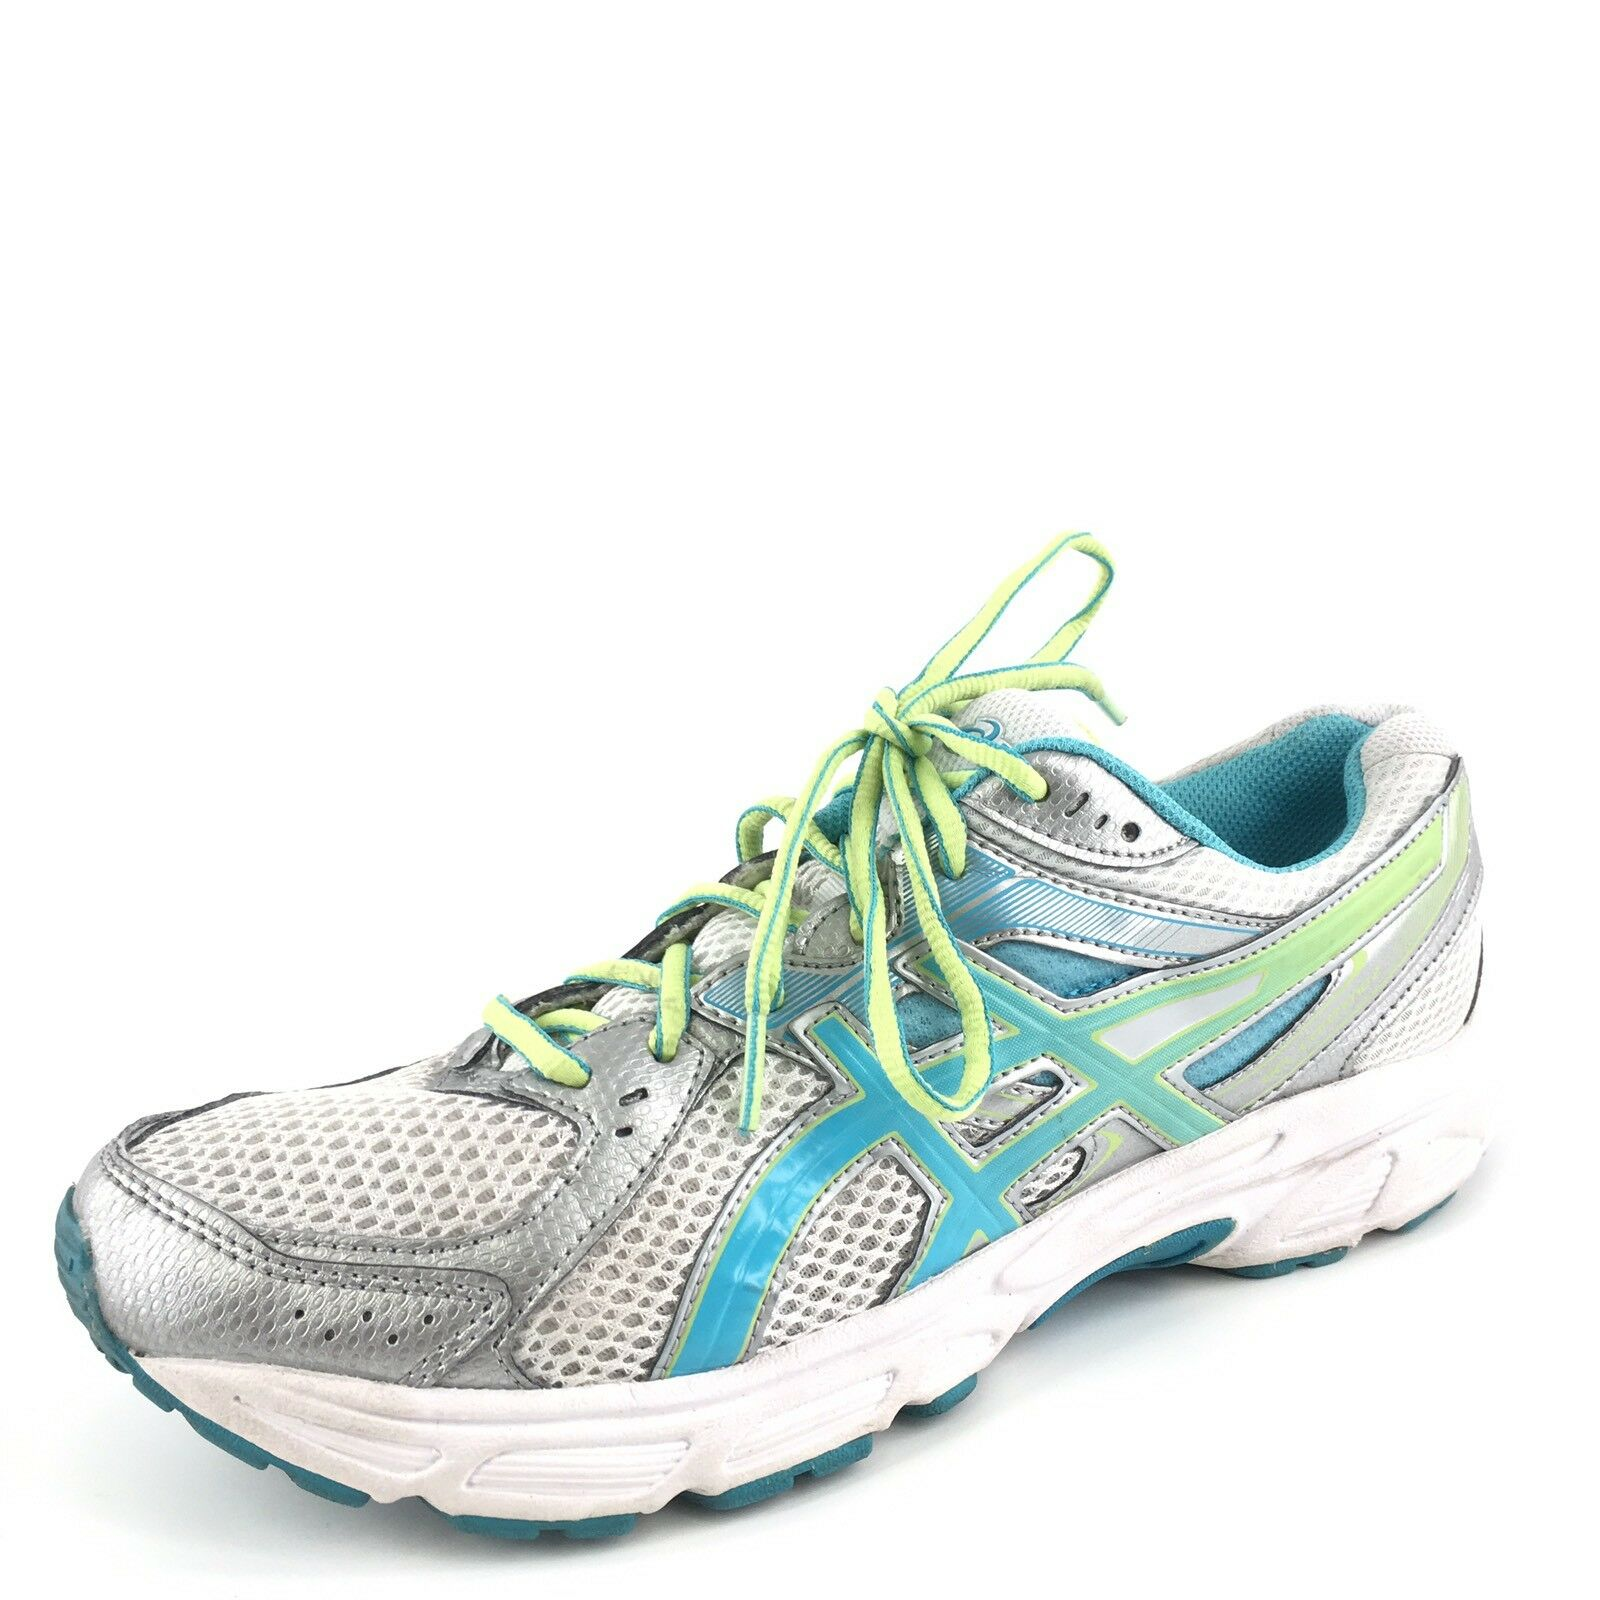 Asics Athletic Gel Contend 2 Multi Athletic Asics Running Training Shoes Donna Size 11 M 871271